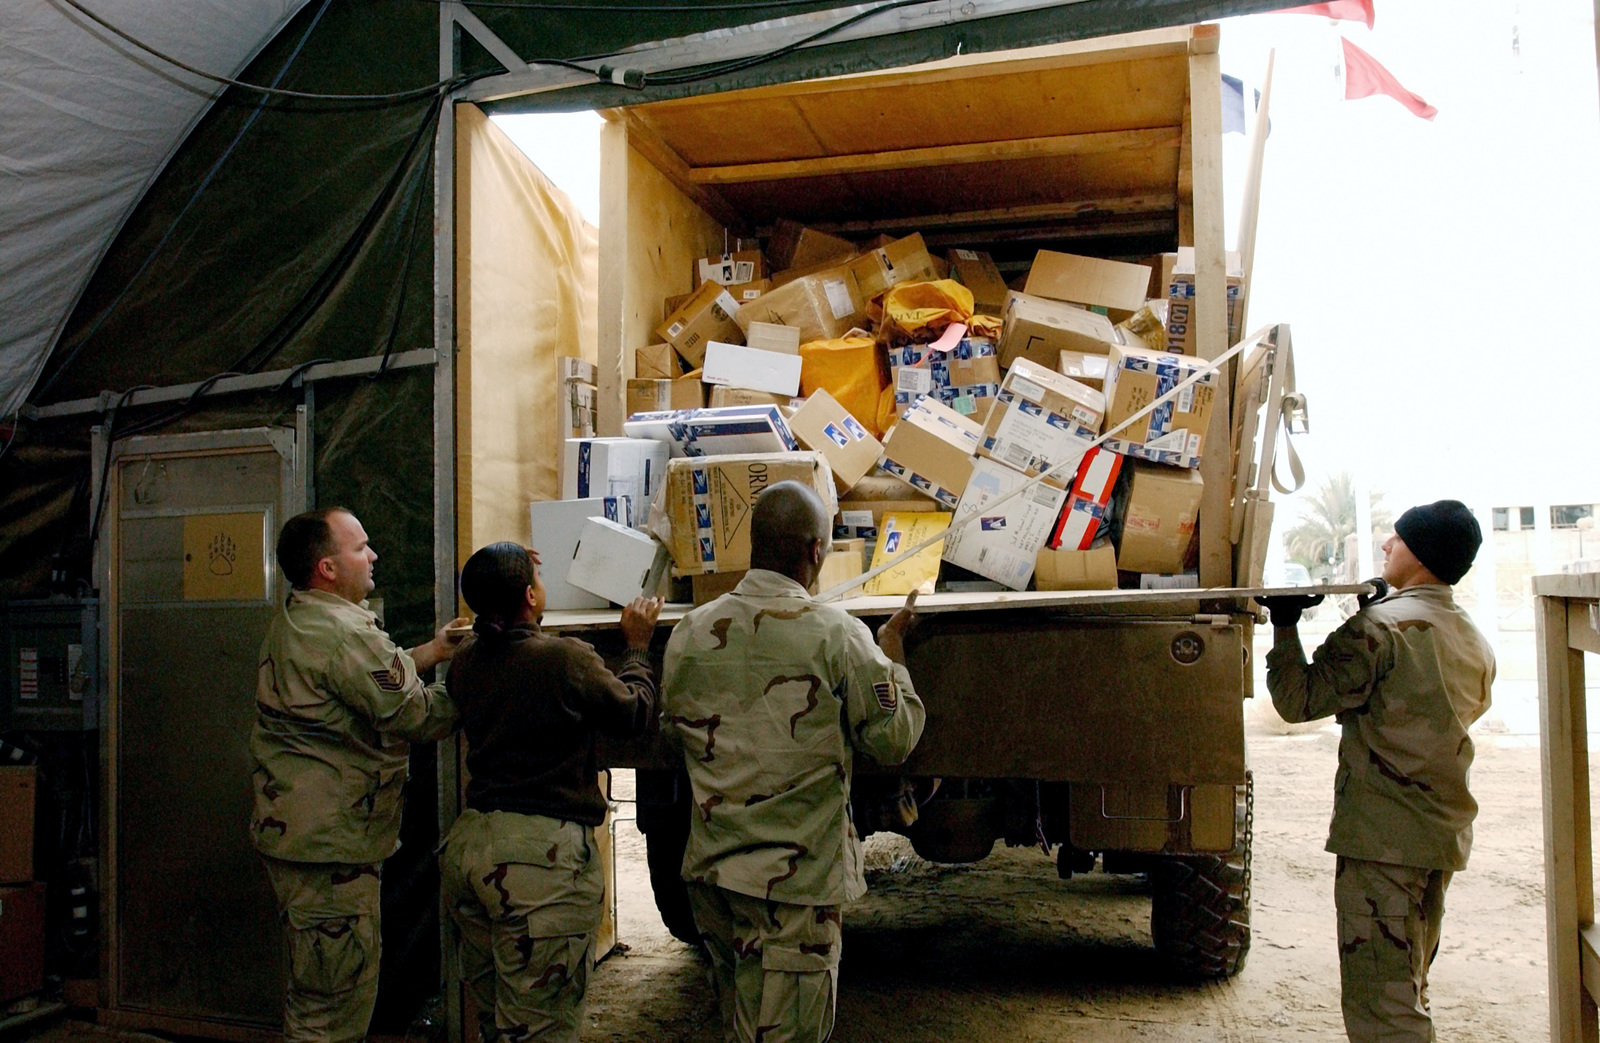 US Air Force (USAF) 447th Expeditionary Communications Squadron (ECS) postal workers offload and sort incoming mail for the unit mail clerks to pick up and distribute to deployed personnel serving at Baghdad International Airport (BIAP), during Operation IRAQI FREEDOM